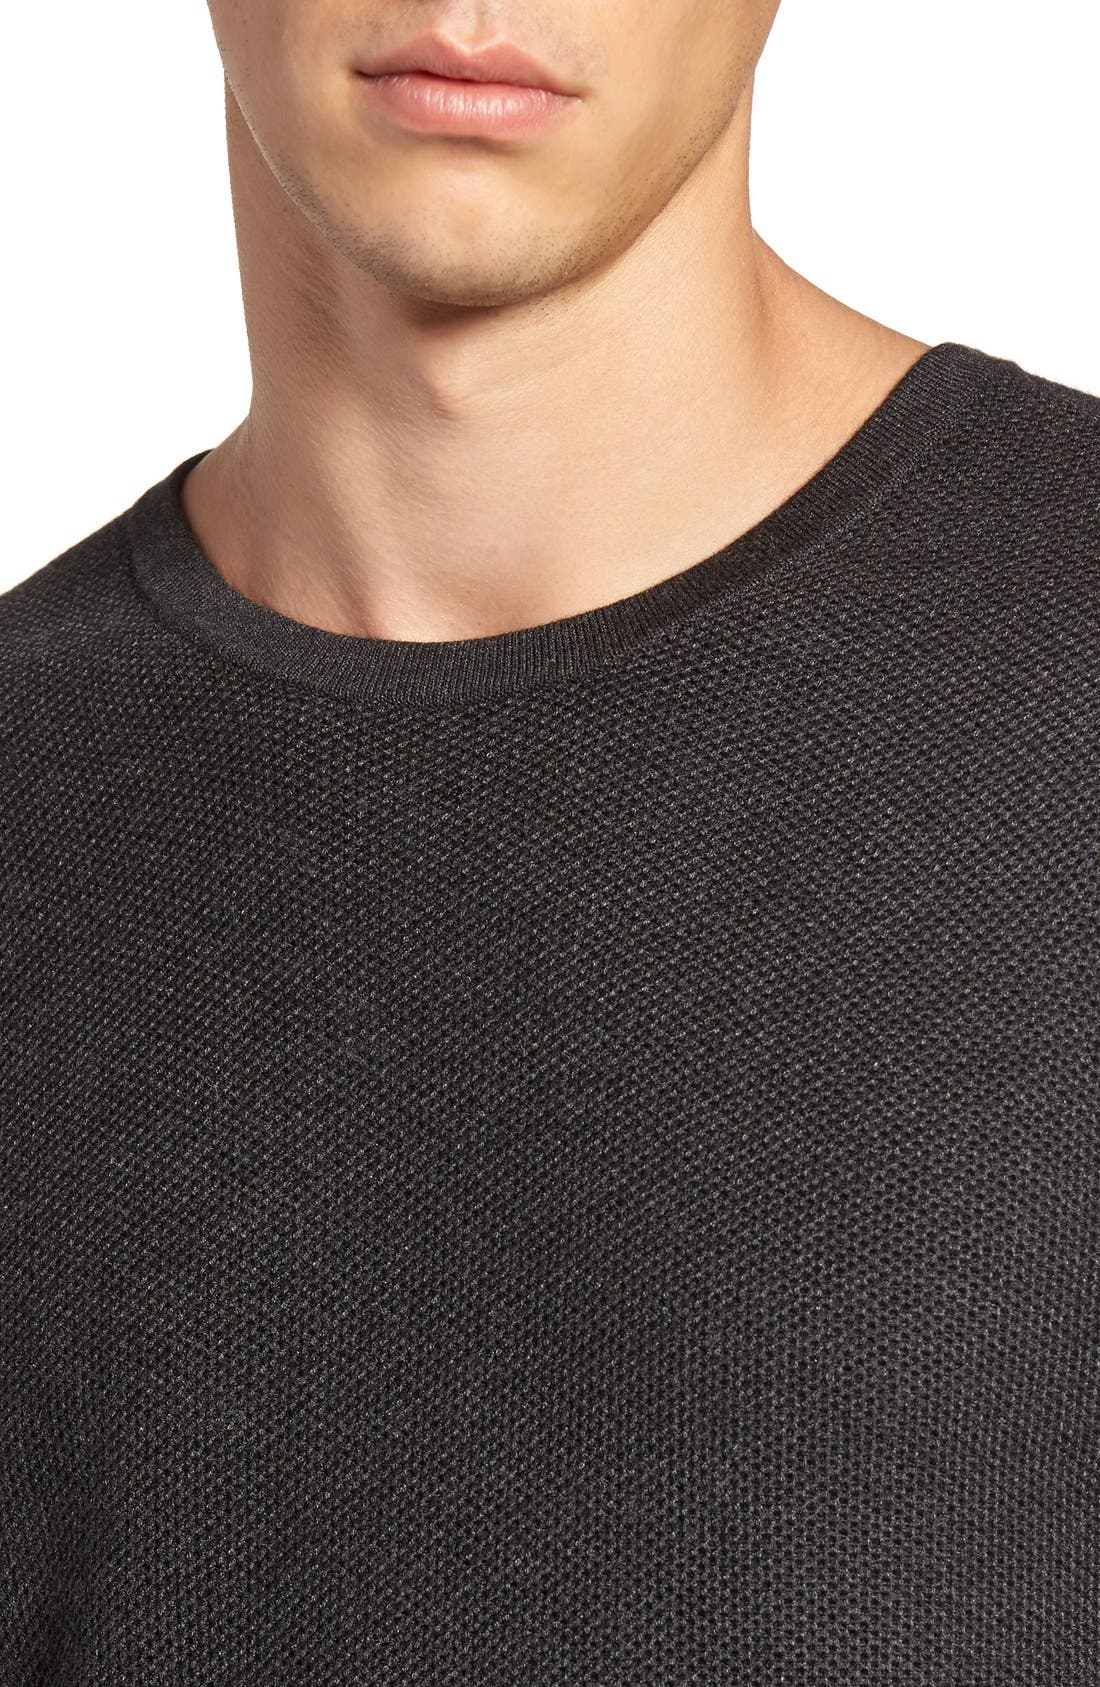 Honeycomb Stitch Crewneck Sweater,                             Alternate thumbnail 4, color,                             Grey Dark Charcoal Heather